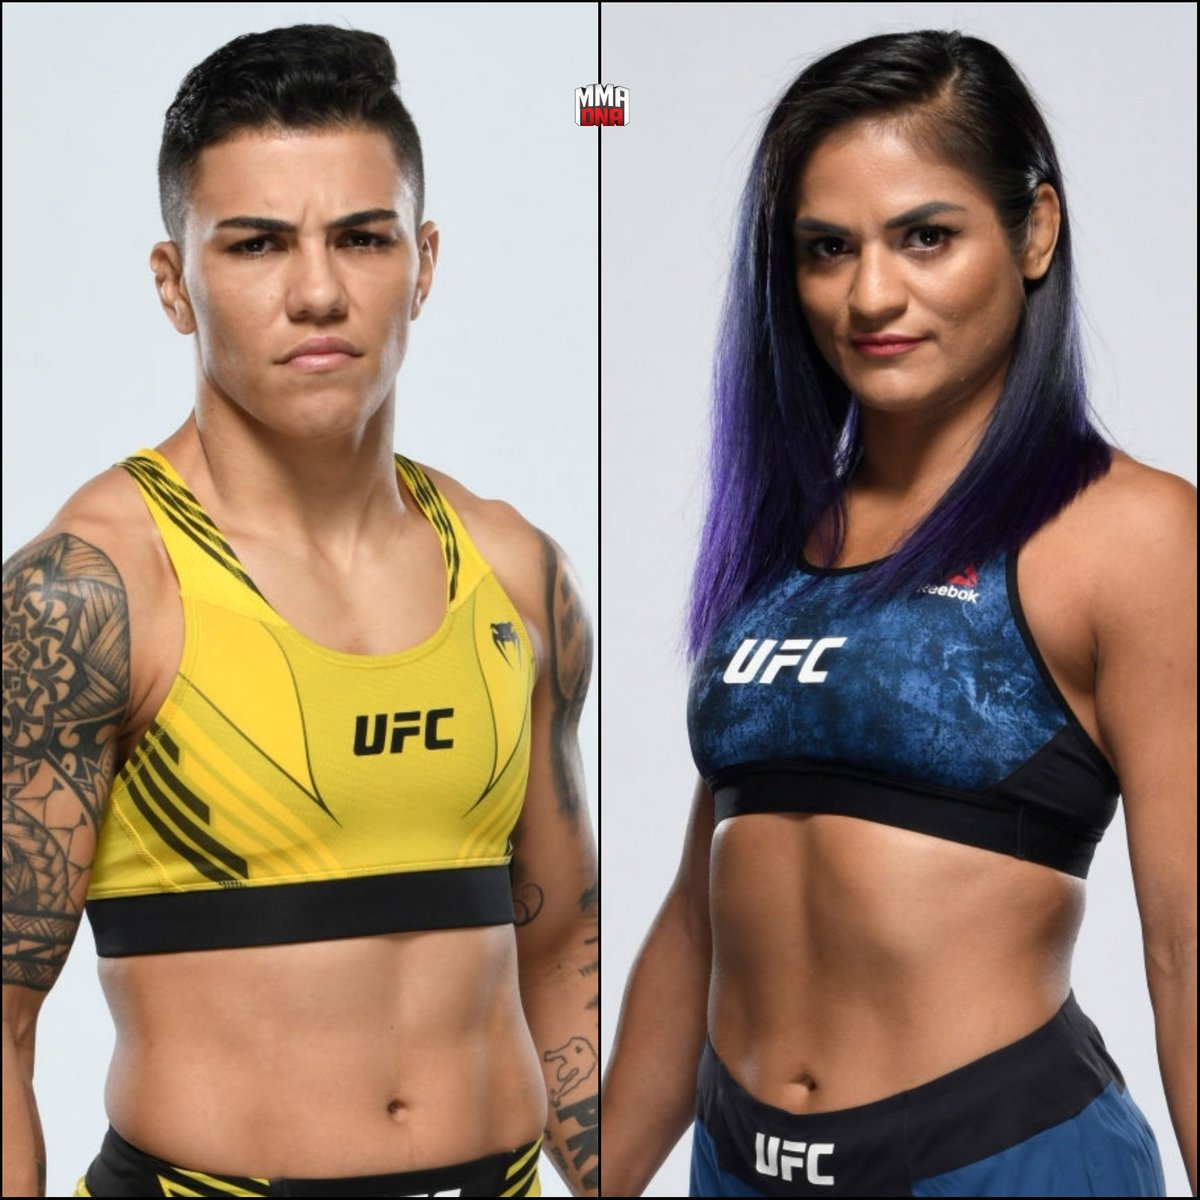 Jessica Andrade will fight Cynthia Calvillo at #UFC266 on September 25th. (per @CCLegaspi) #UFC #MMA #UFCESPN   UFC 266 PPV is now on September 25th!! https://t.co/vI7uEi28xs